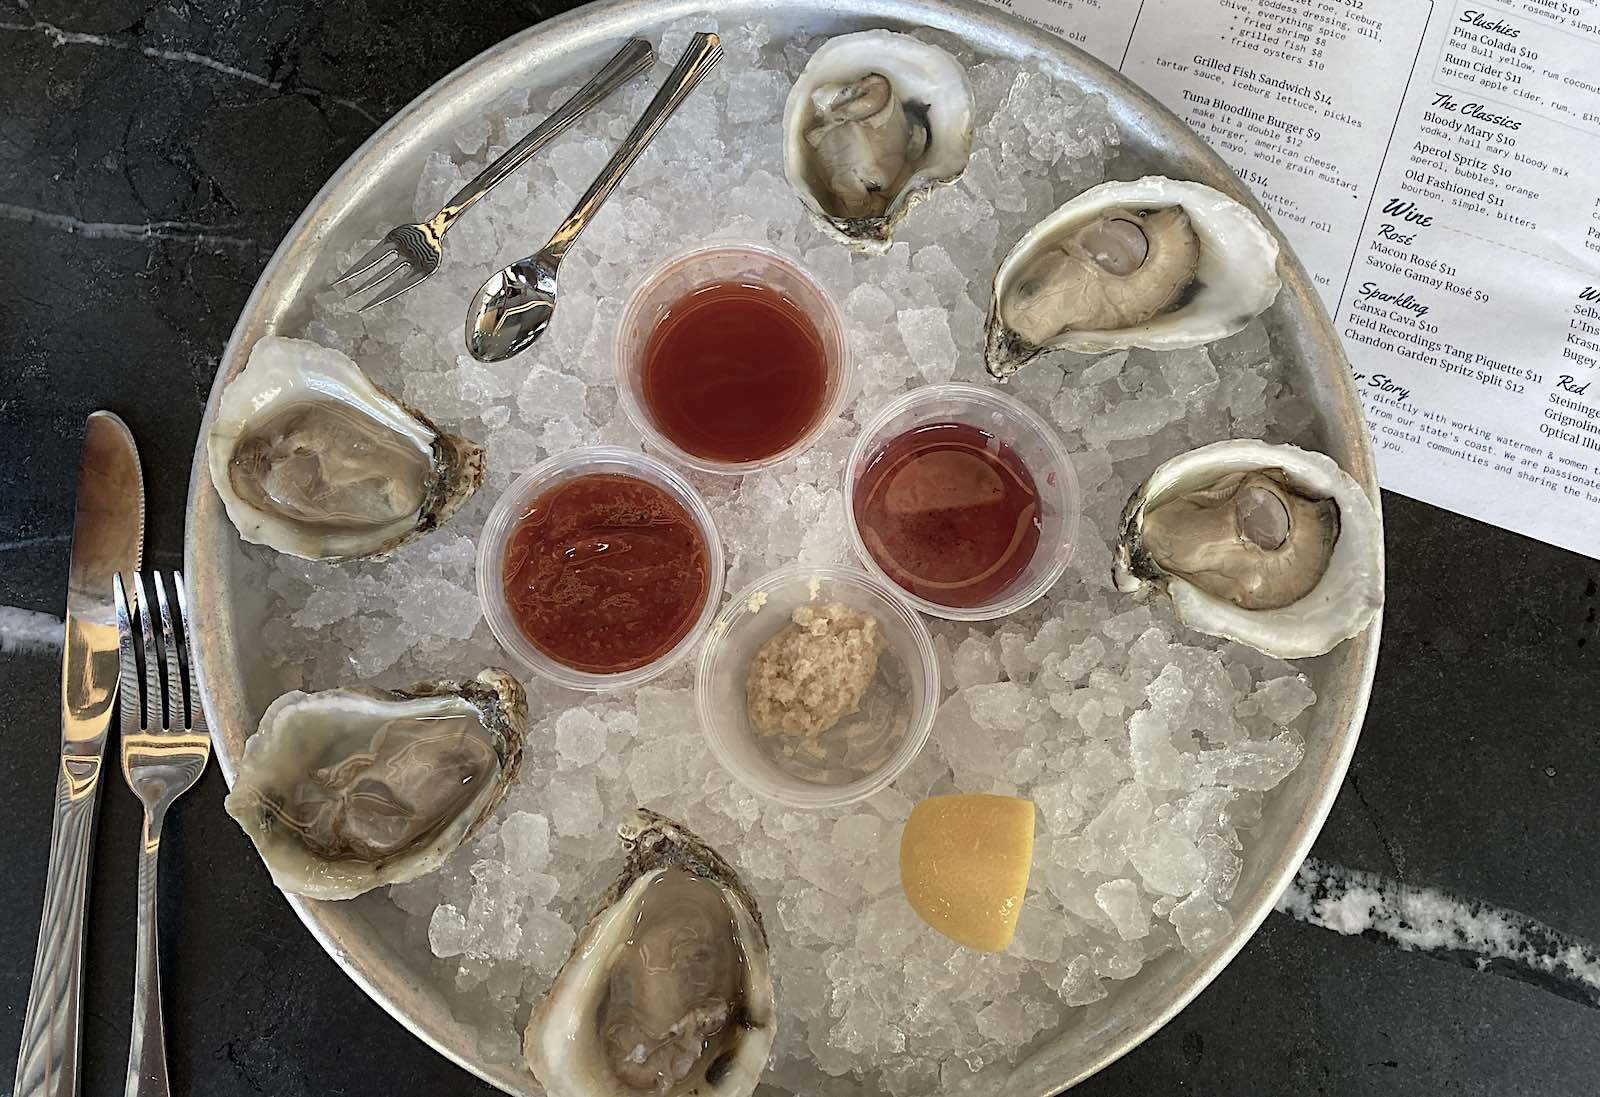 A tray of fresh-shucked North Carolina oysters from Locals in Raleigh's Transfer Co. Food Hall